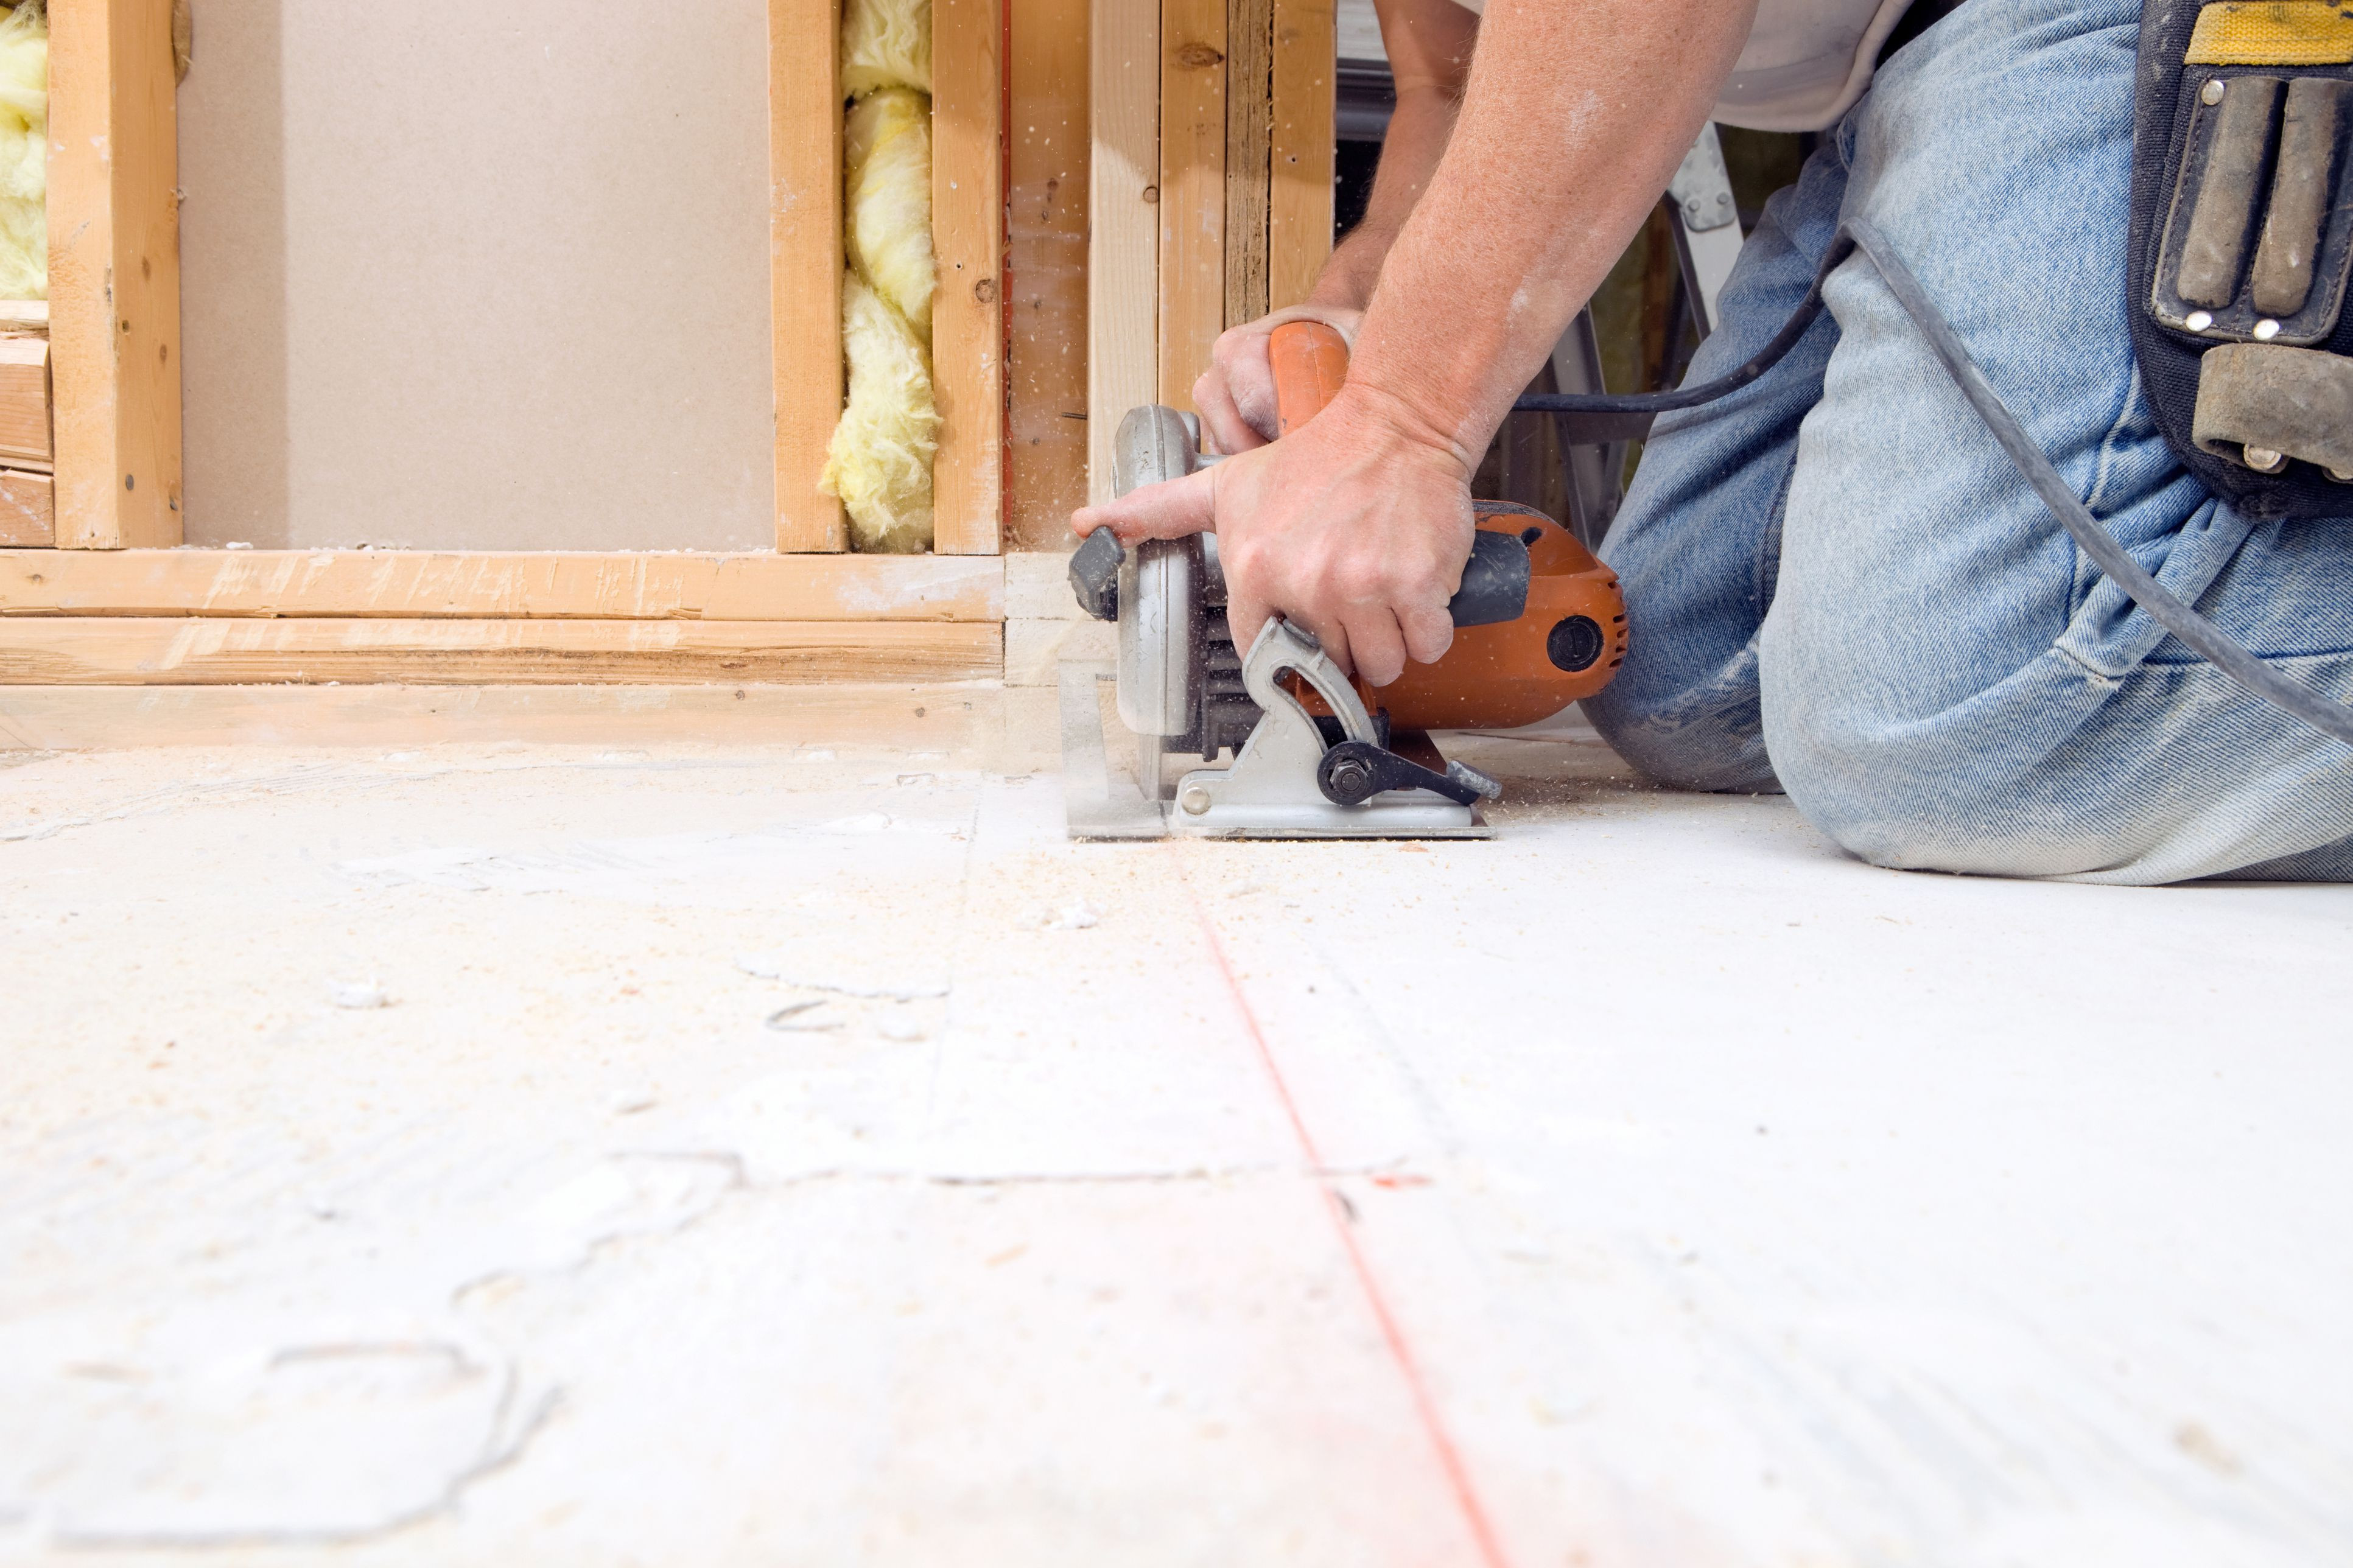 antique hardwood flooring oakville of subfloor underlayment joists guide to floor layers with regard to circular saw cutting subfloor for house remodeling project 185001220 57f51afd3df78c690fcf20ce